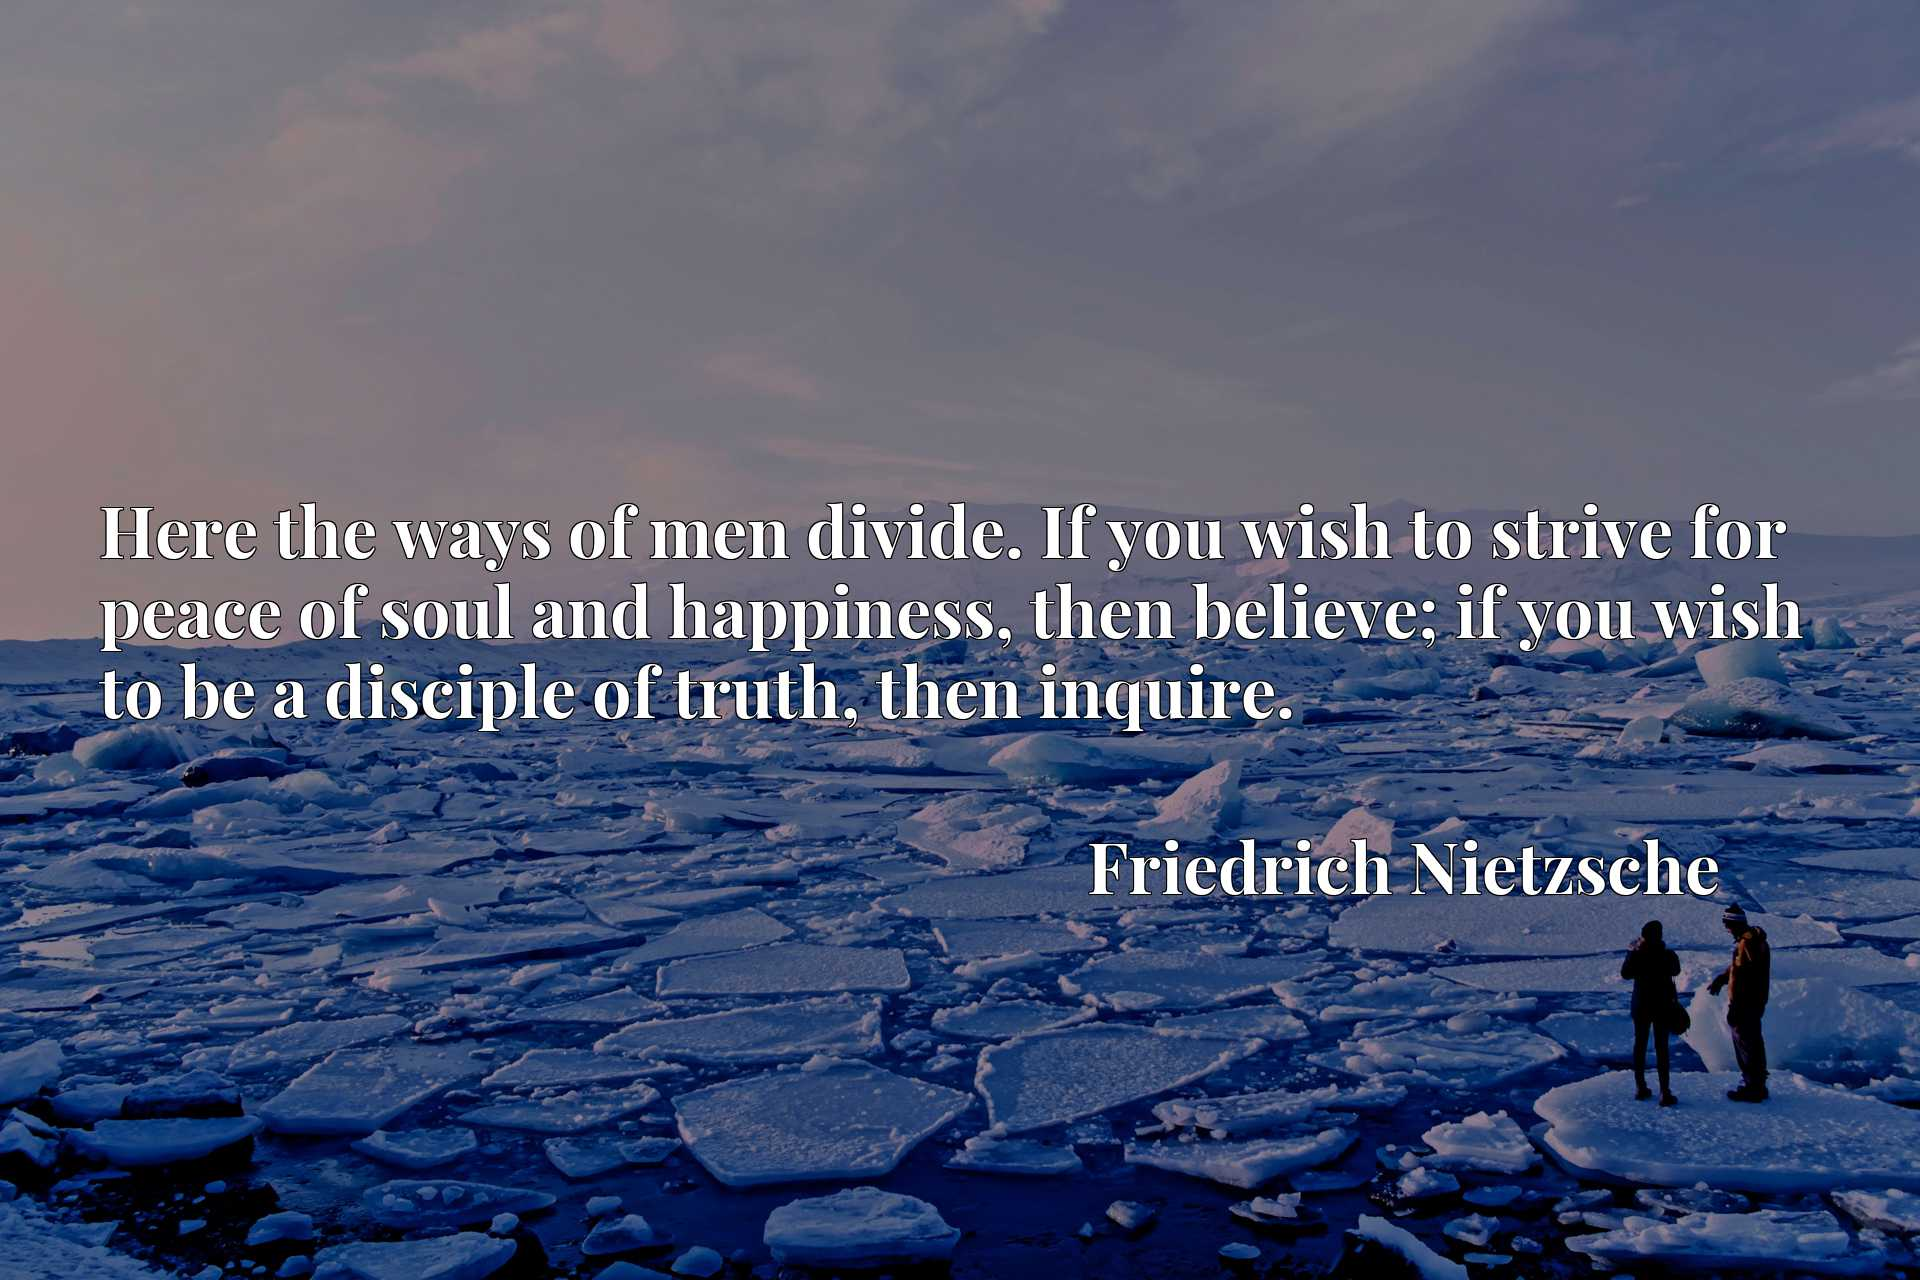 Here the ways of men divide. If you wish to strive for peace of soul and happiness, then believe; if you wish to be a disciple of truth, then inquire.